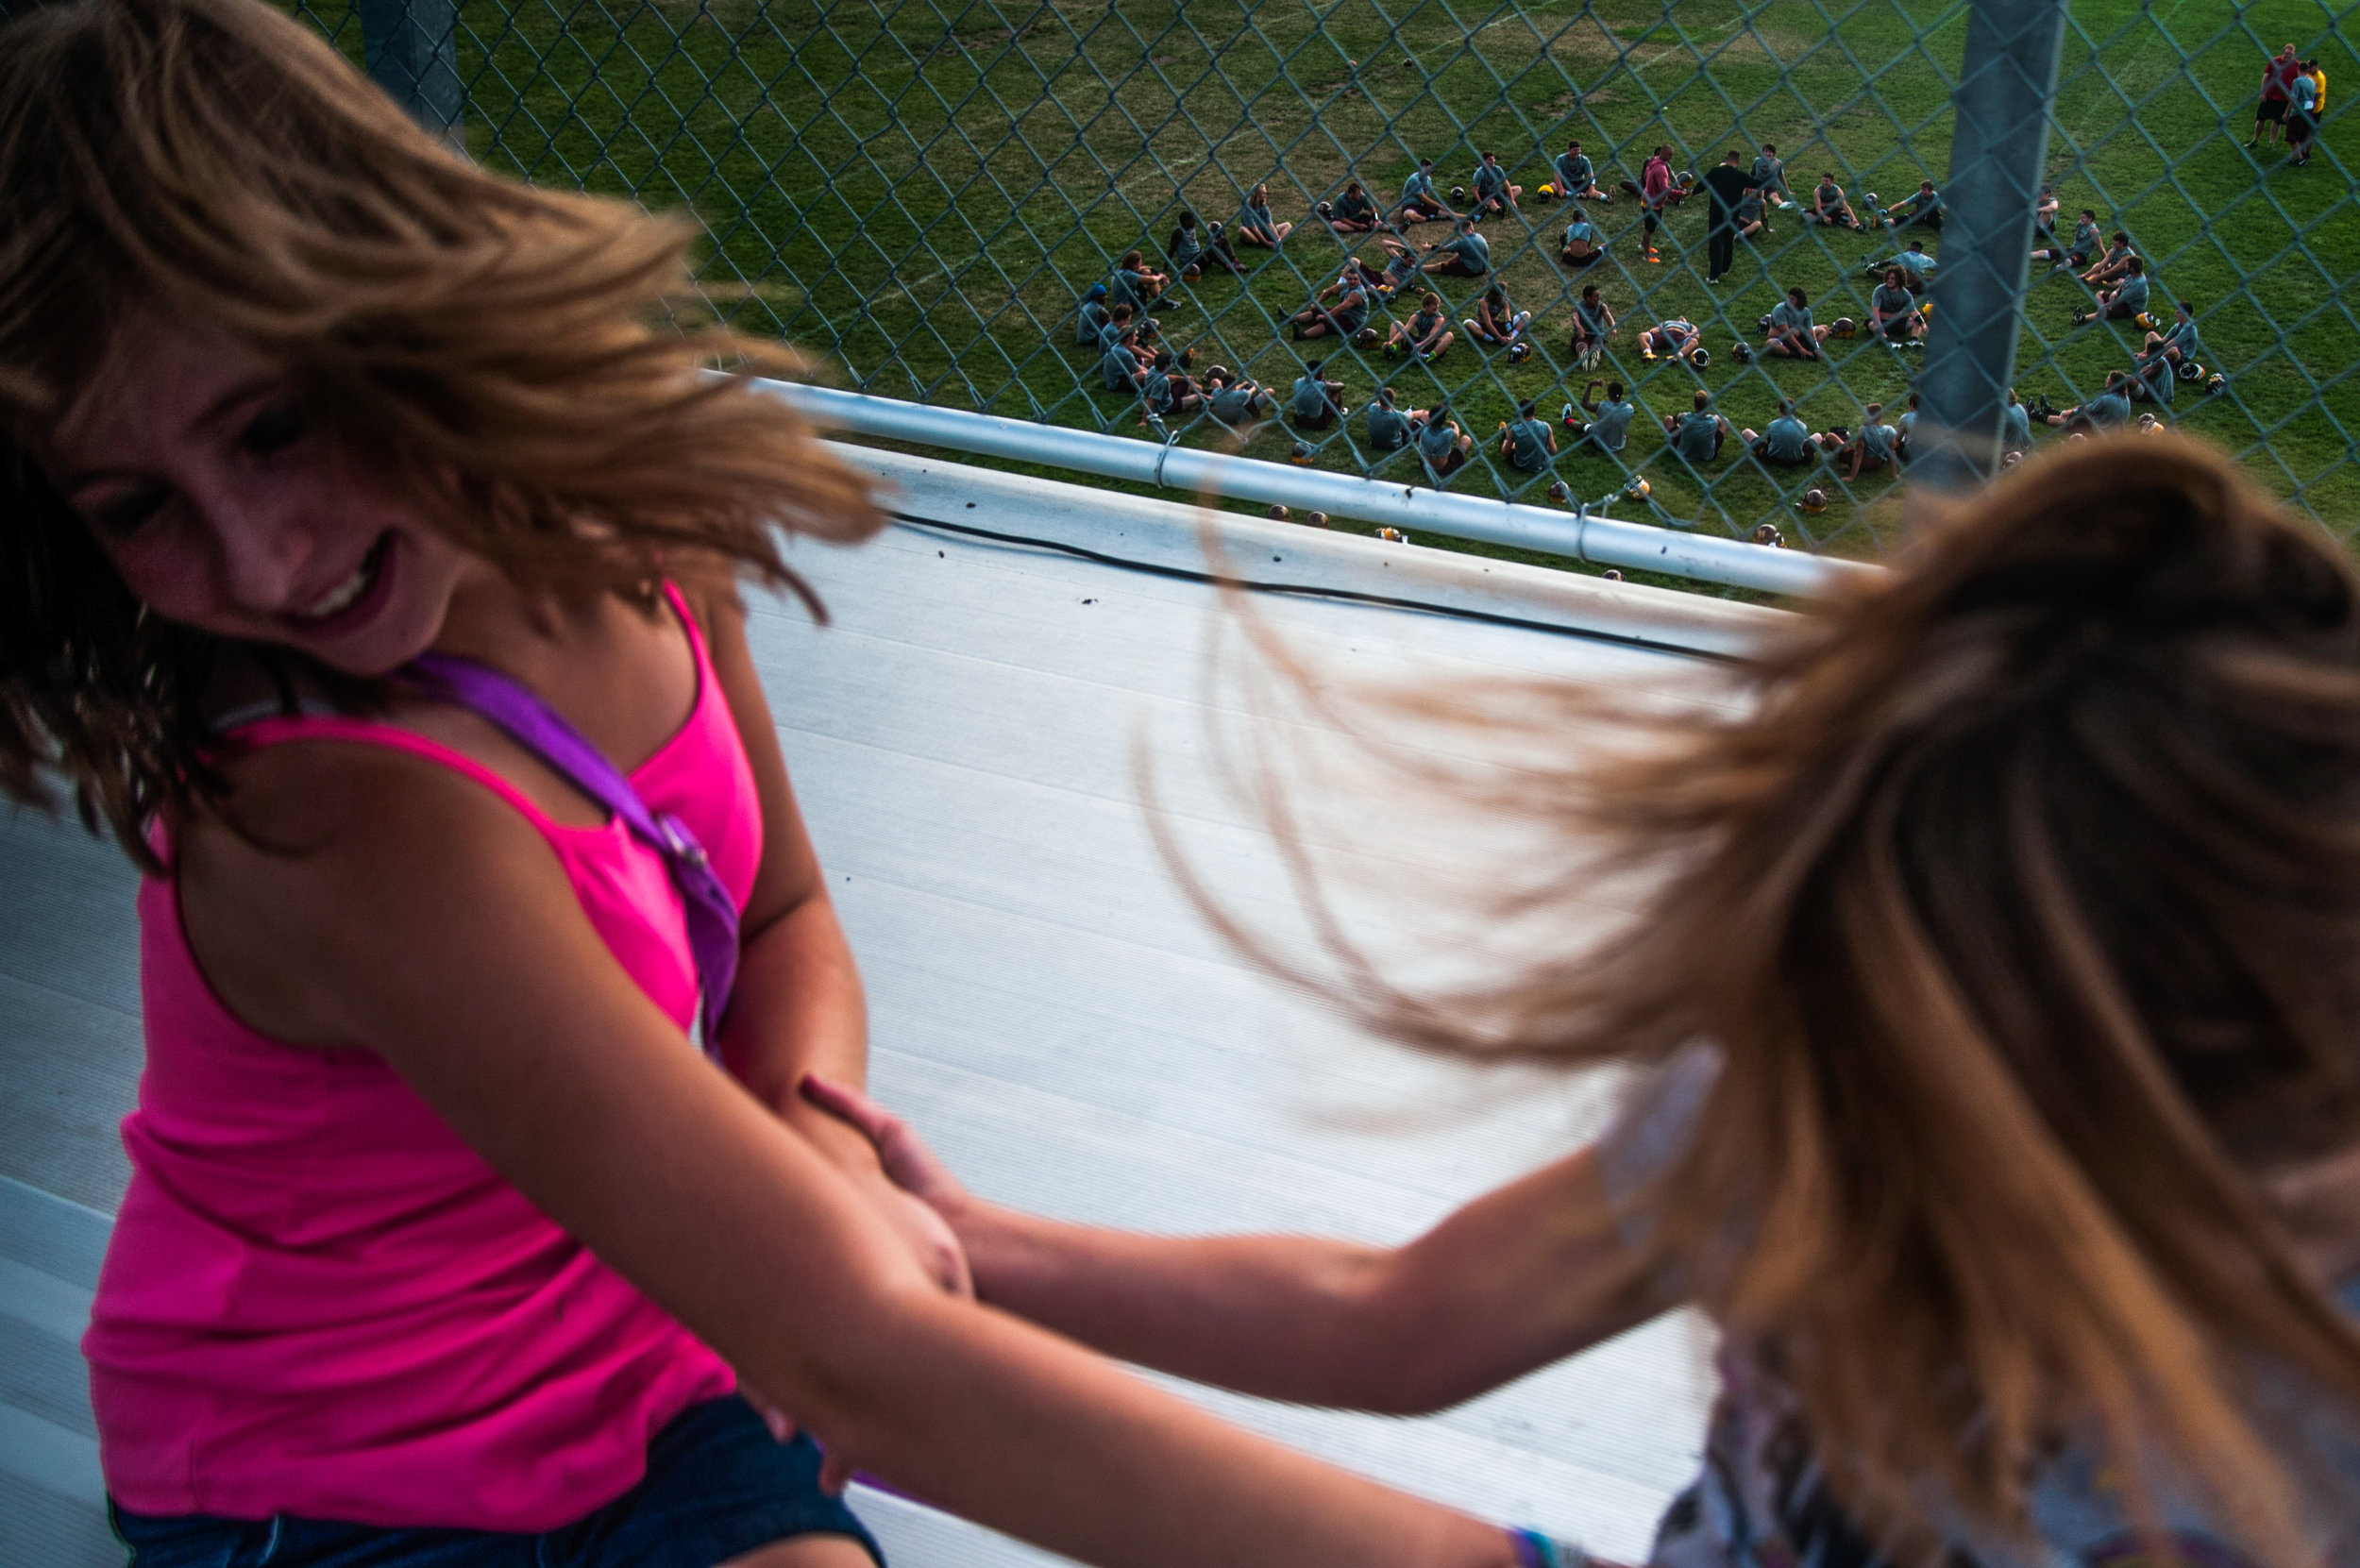 From left, Aneisa Krueger, 11, and Angel Stocklell, 8, both of Davison, toss their hair while playing together during the Davison Community Schools Back to School Blast on Tuesday, August 9, 2016 at Cardinal Stadium in Davison.